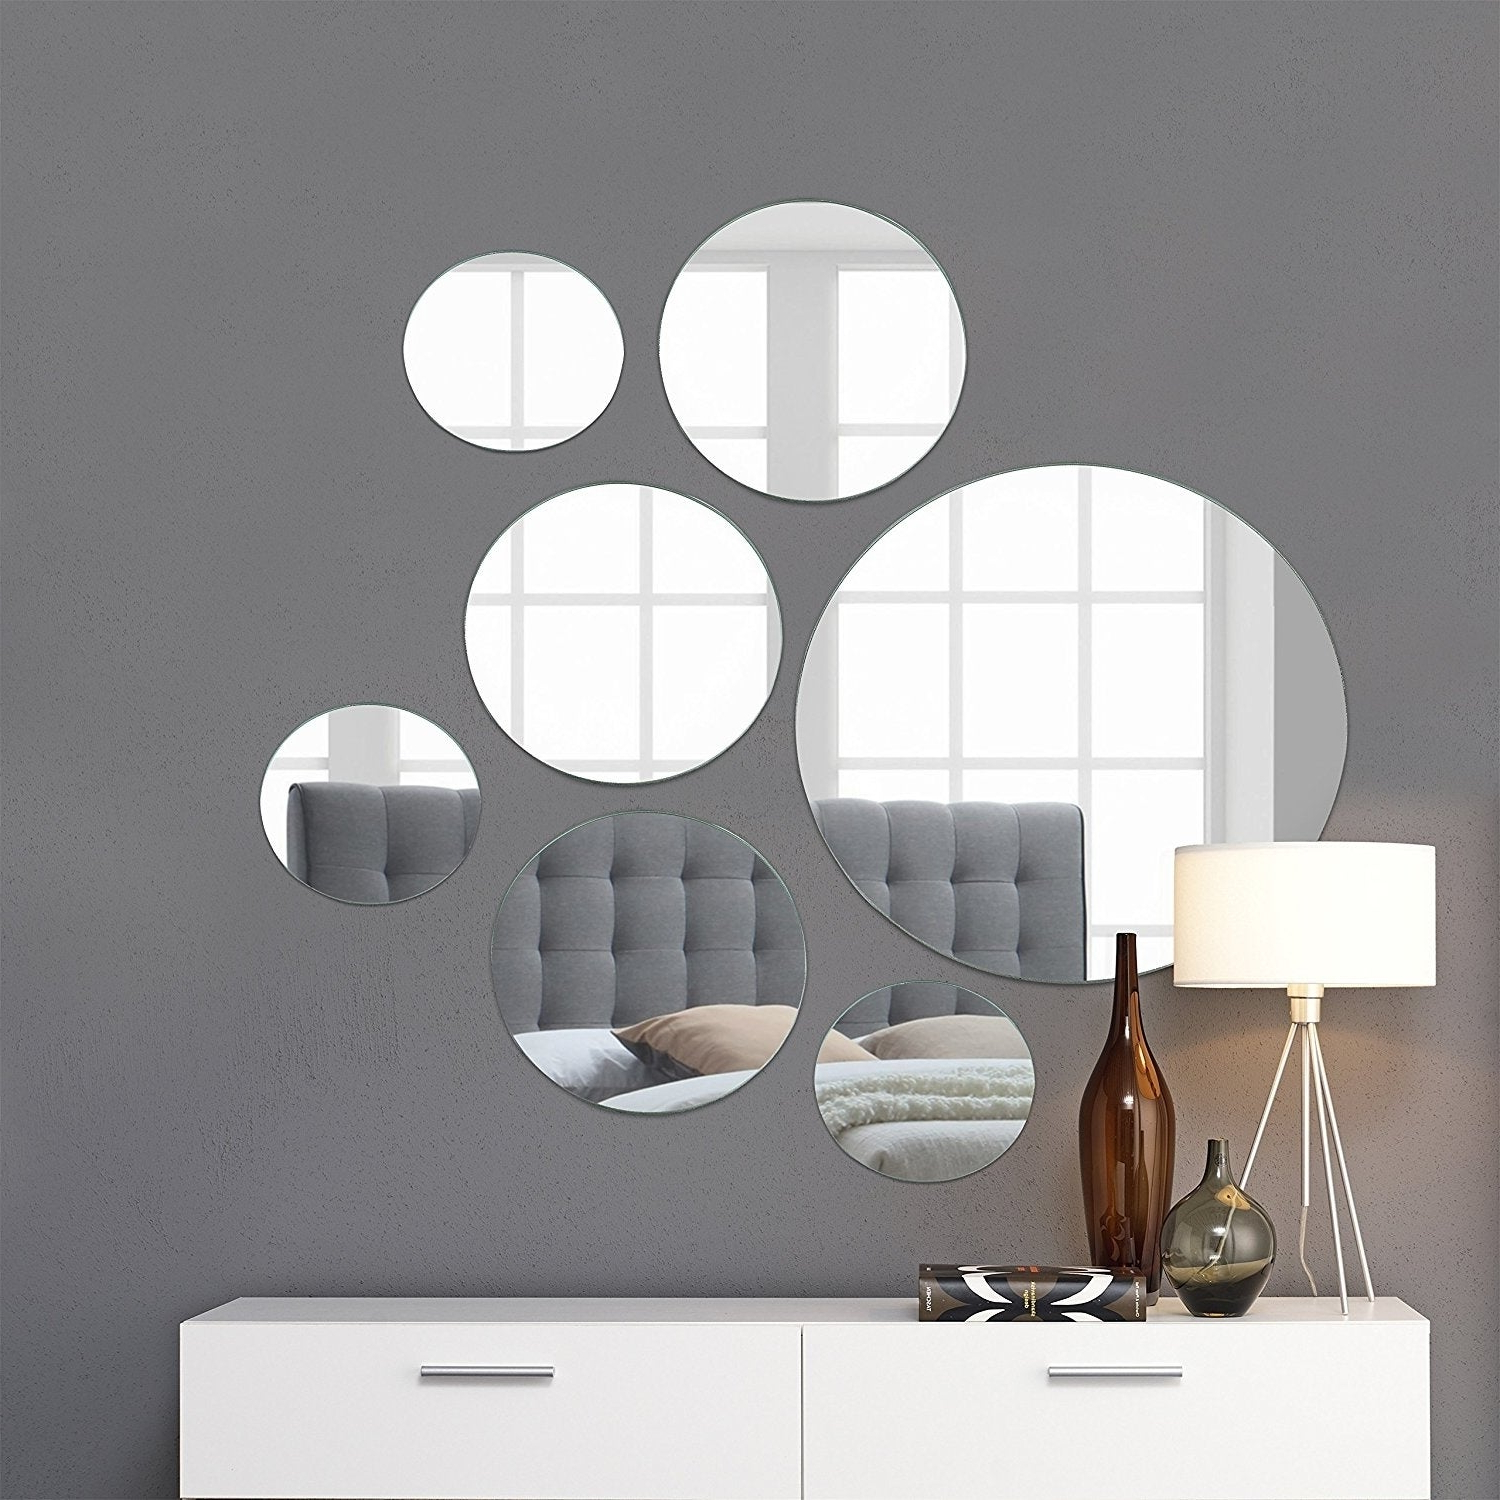 "Round Wall Mirror Mounted Assorted Sizes – Silver – 1 Large 10"" , 3 Medium 7"" , 3 Small 4"" ,set Of 7 Throughout Widely Used Large Round Wall Mirrors (View 11 of 20)"